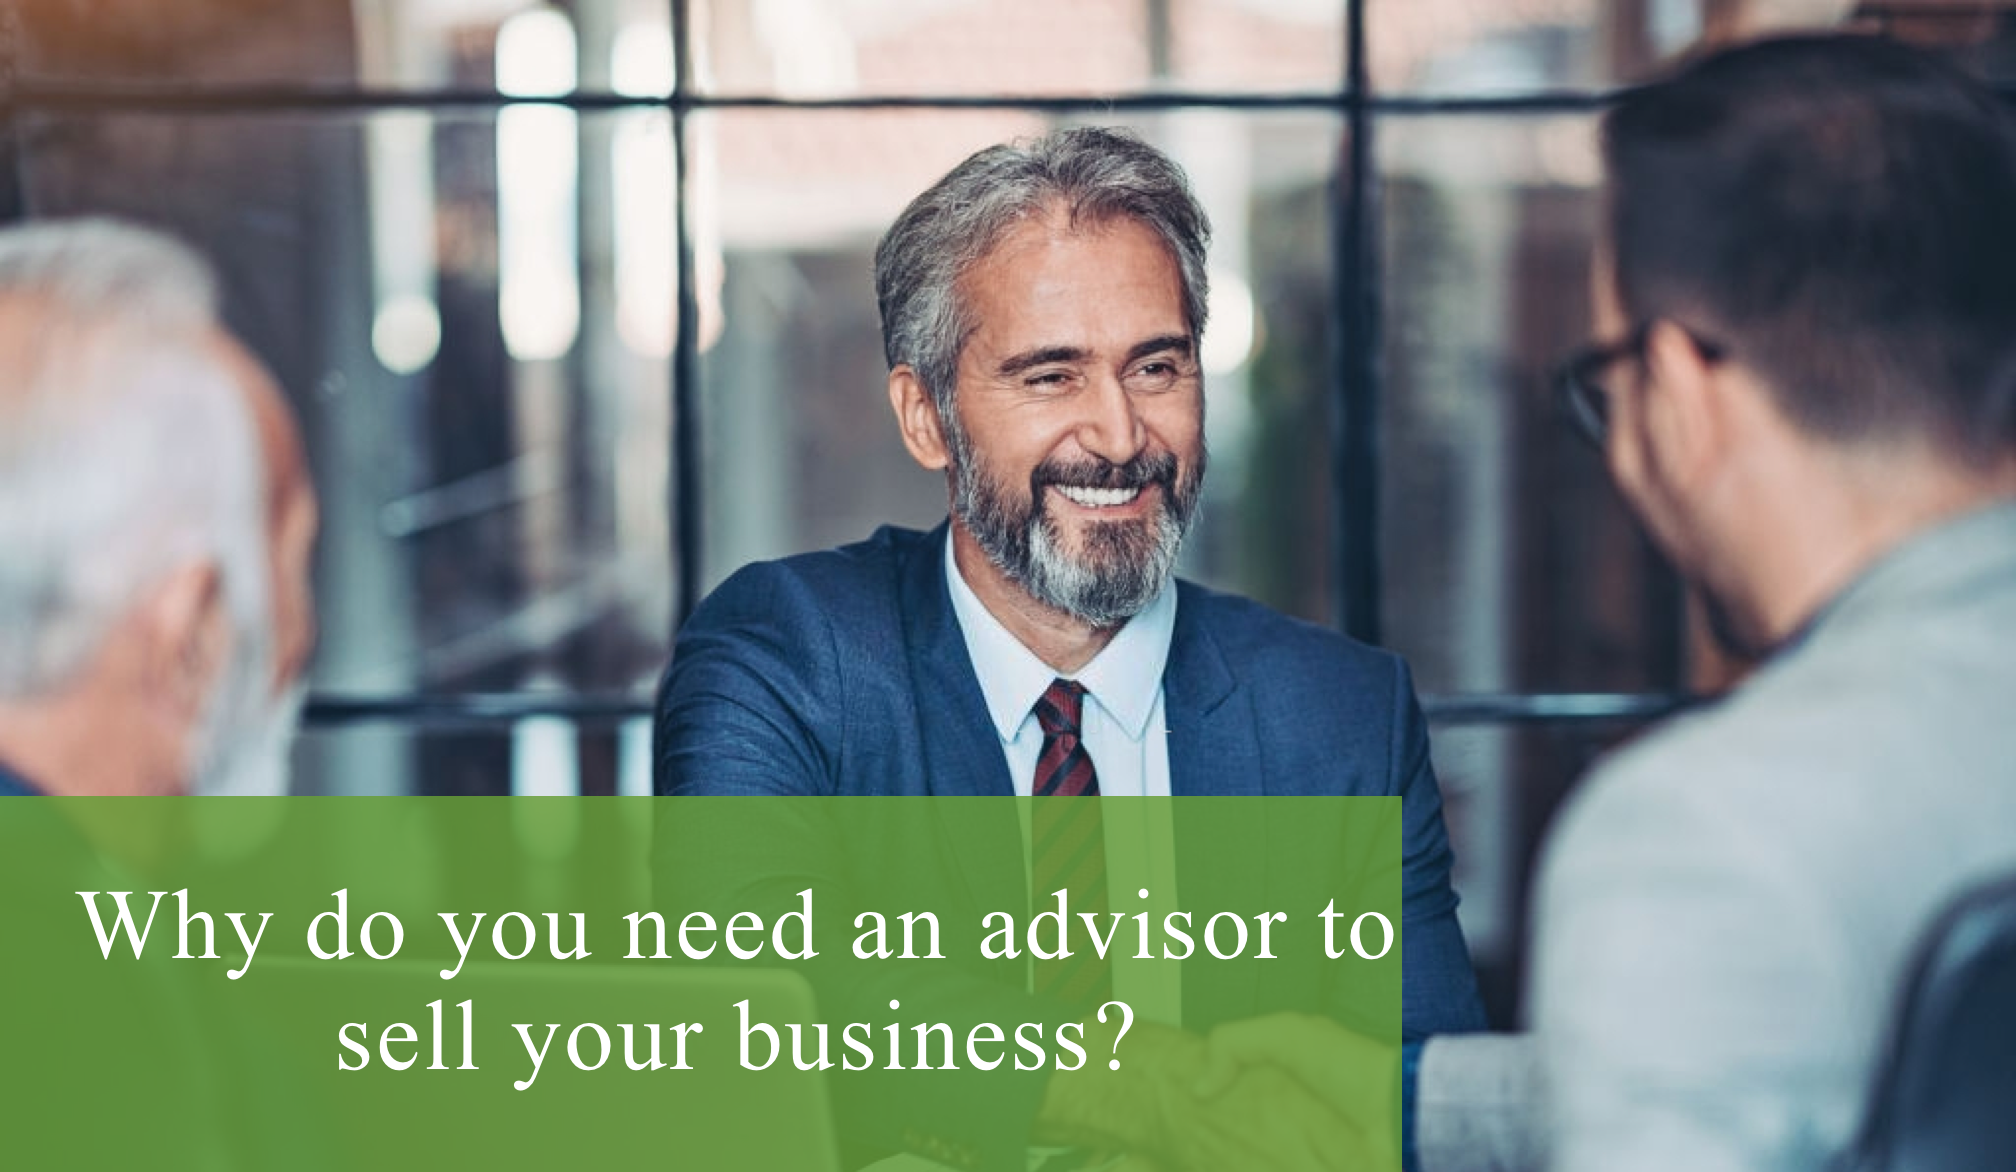 Why do you need an advisor to sell your business?